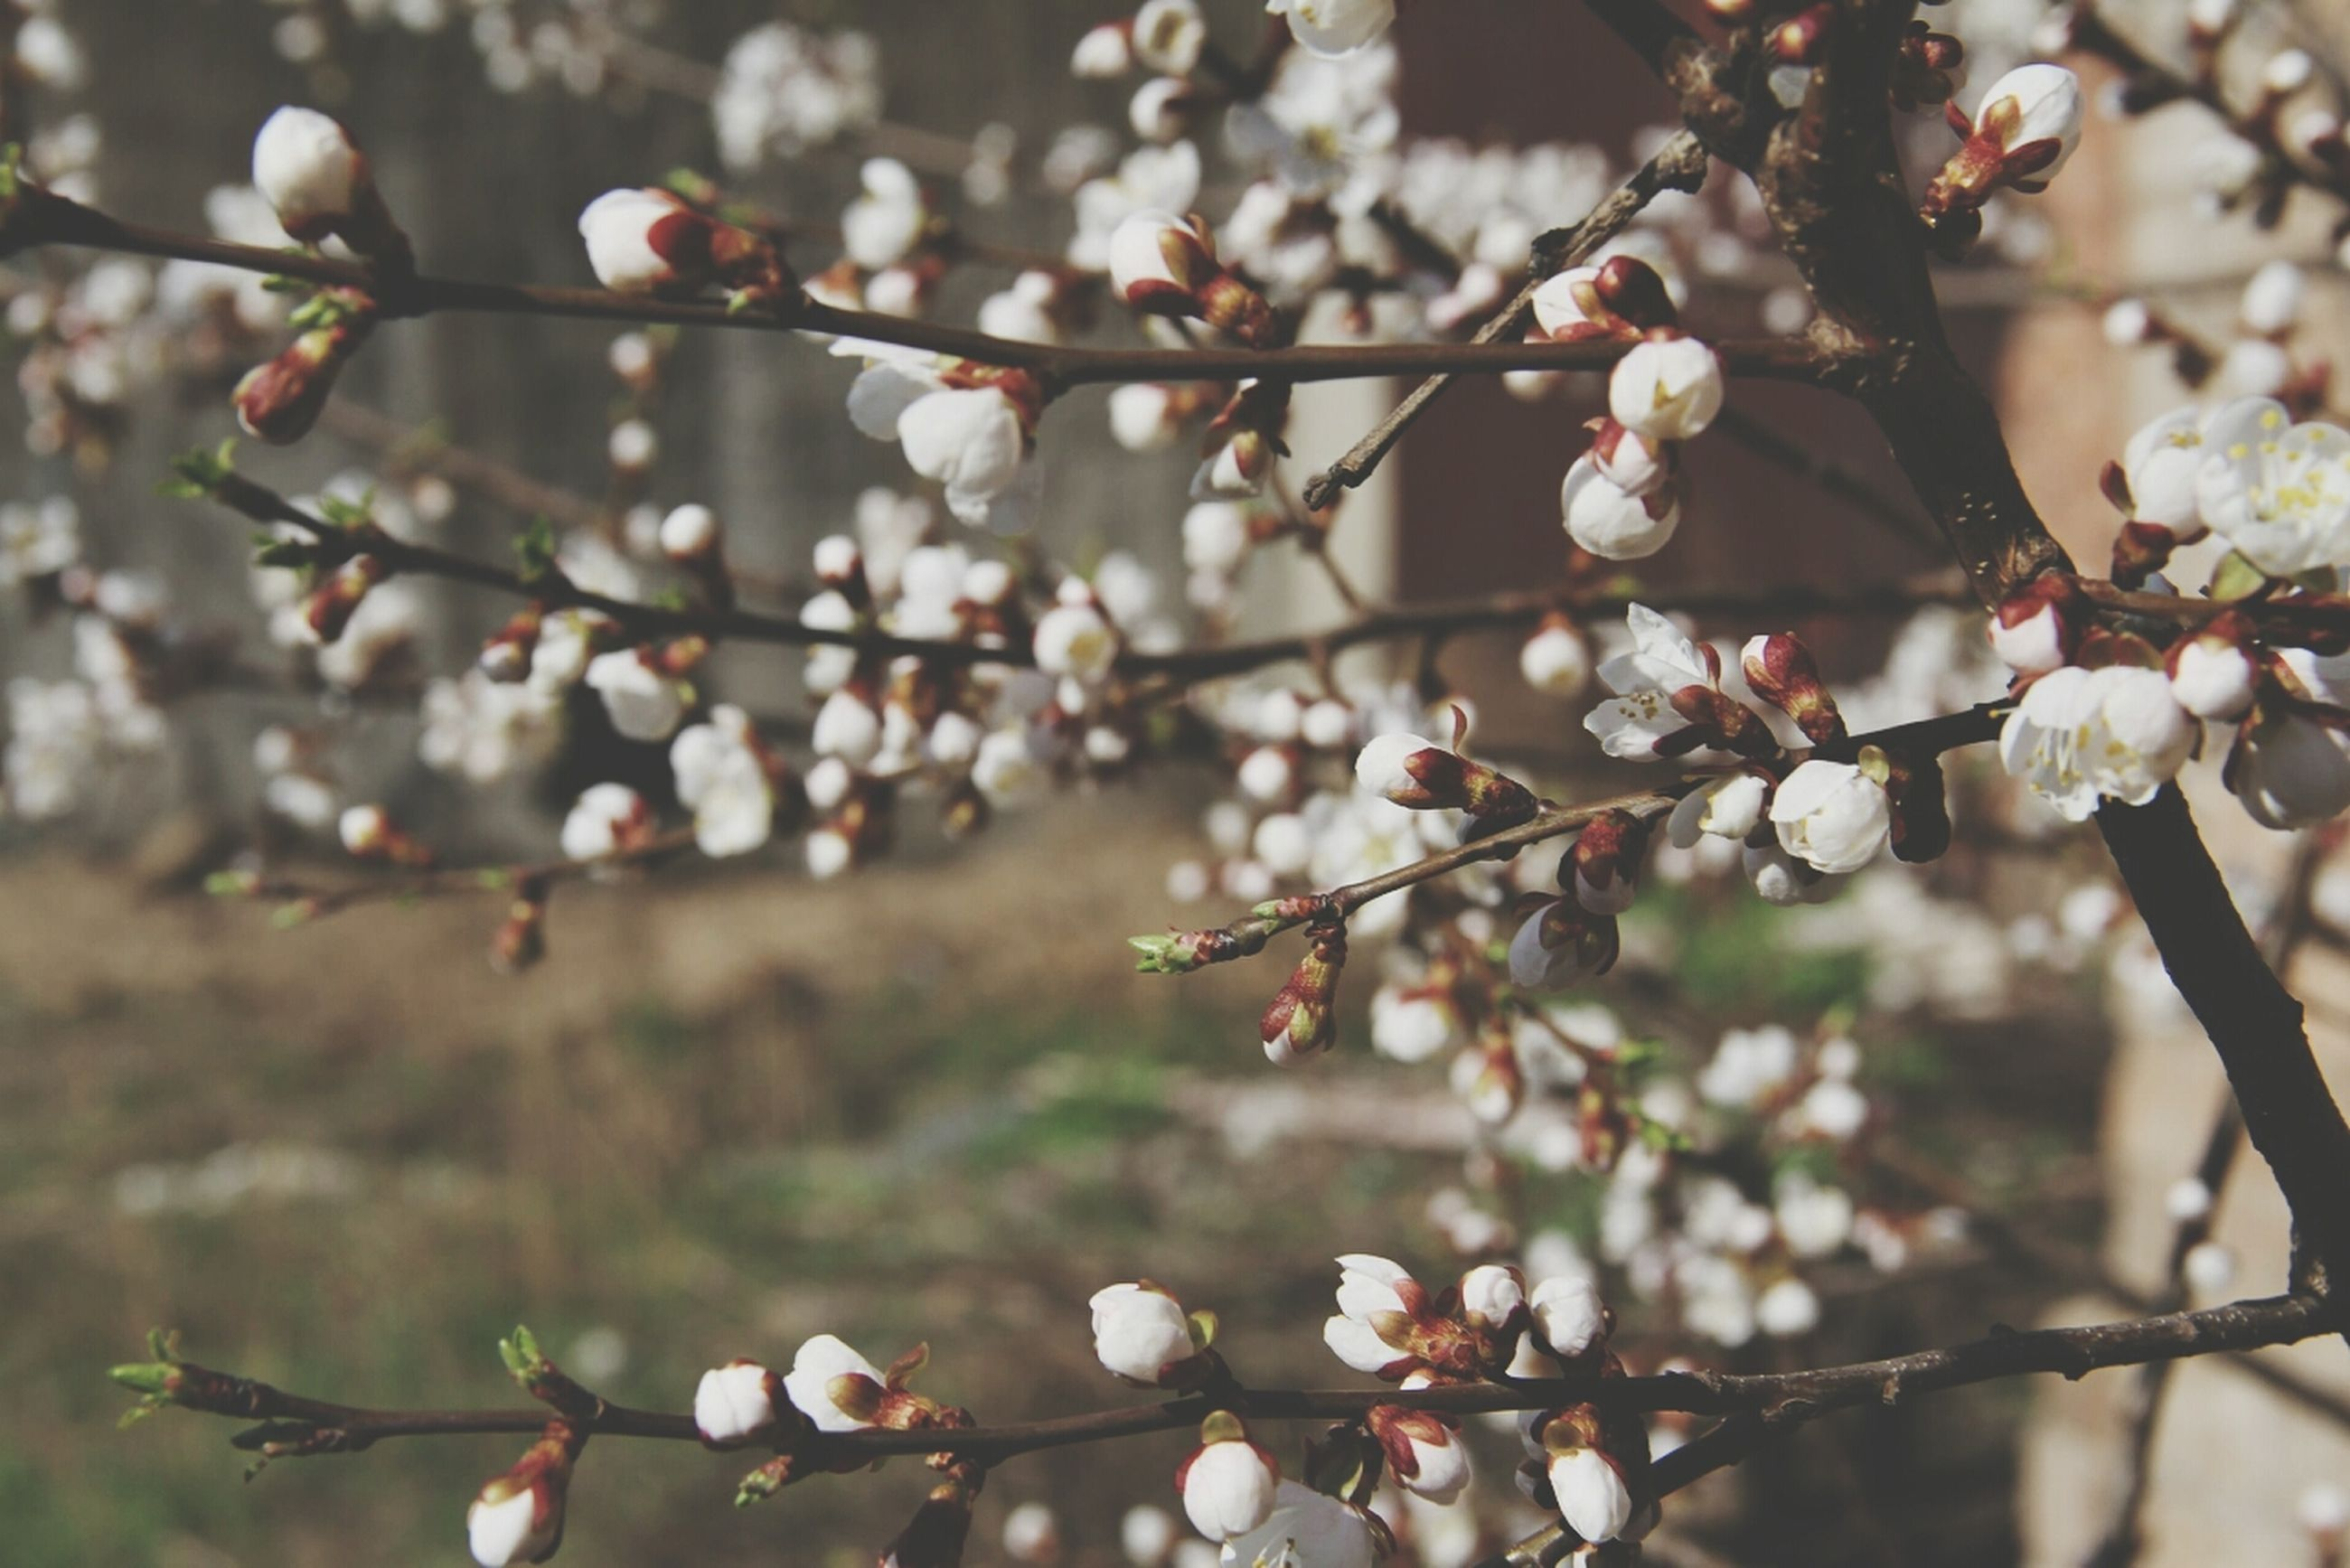 branch, flower, growth, focus on foreground, tree, freshness, nature, beauty in nature, twig, fragility, close-up, blossom, cherry blossom, cherry tree, springtime, bud, outdoors, selective focus, blooming, low angle view